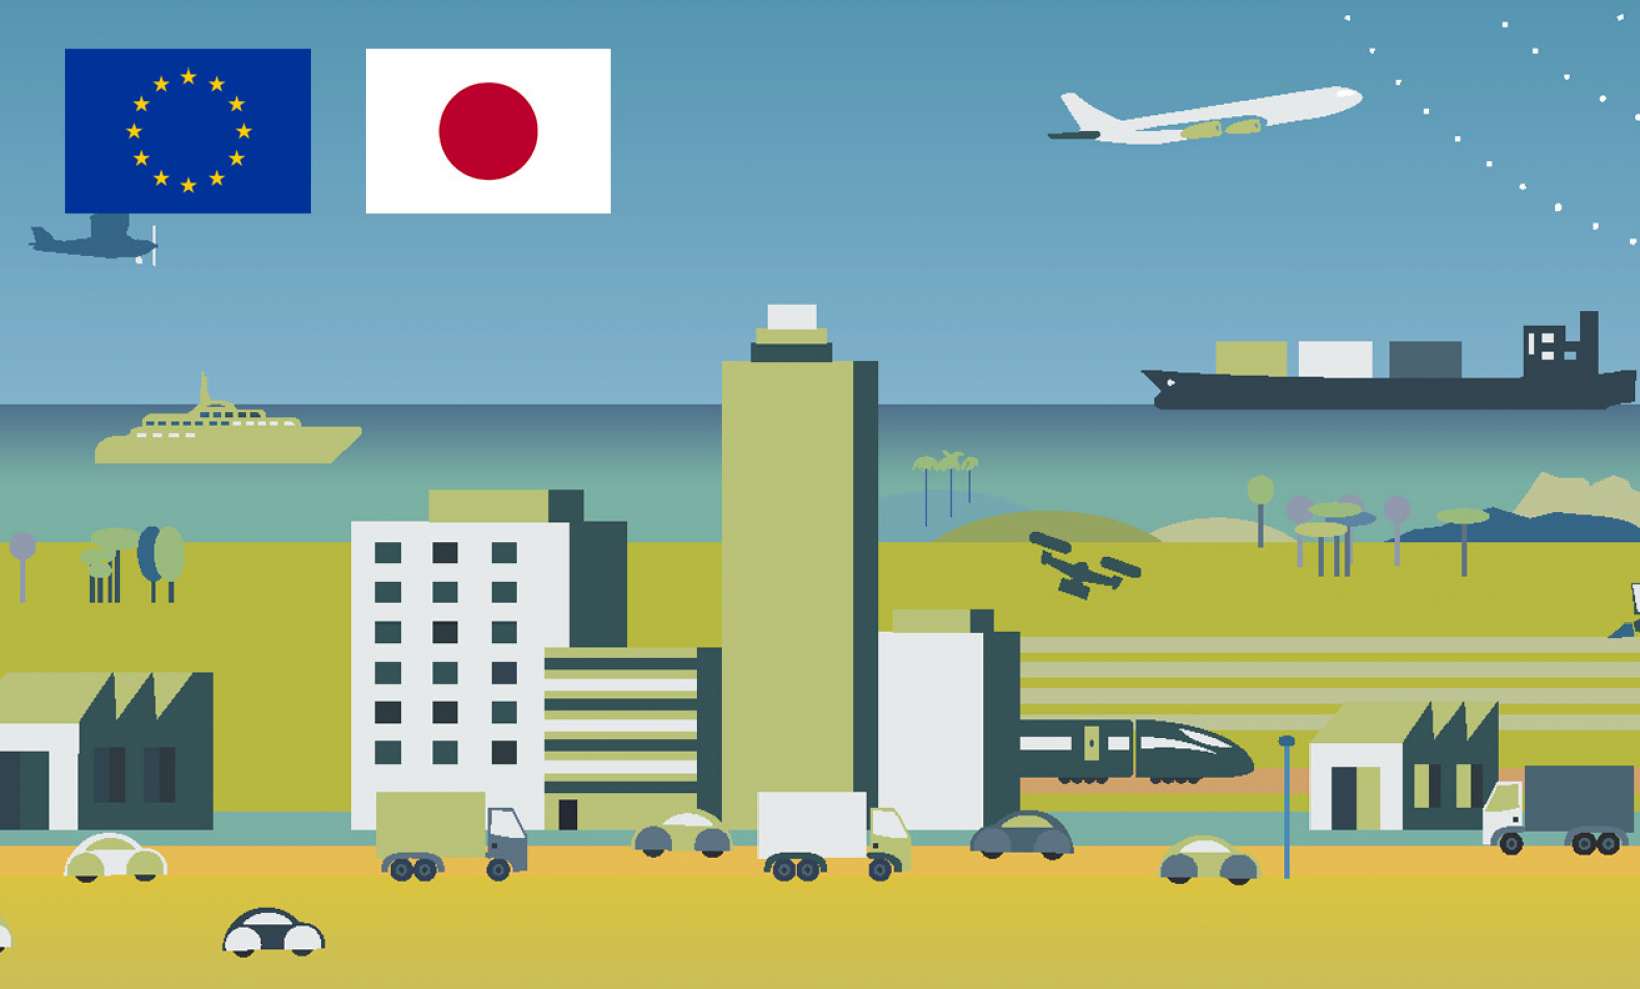 The roundtable will be an opportunity to explore GNSS business cooperation between Europe and Japan.